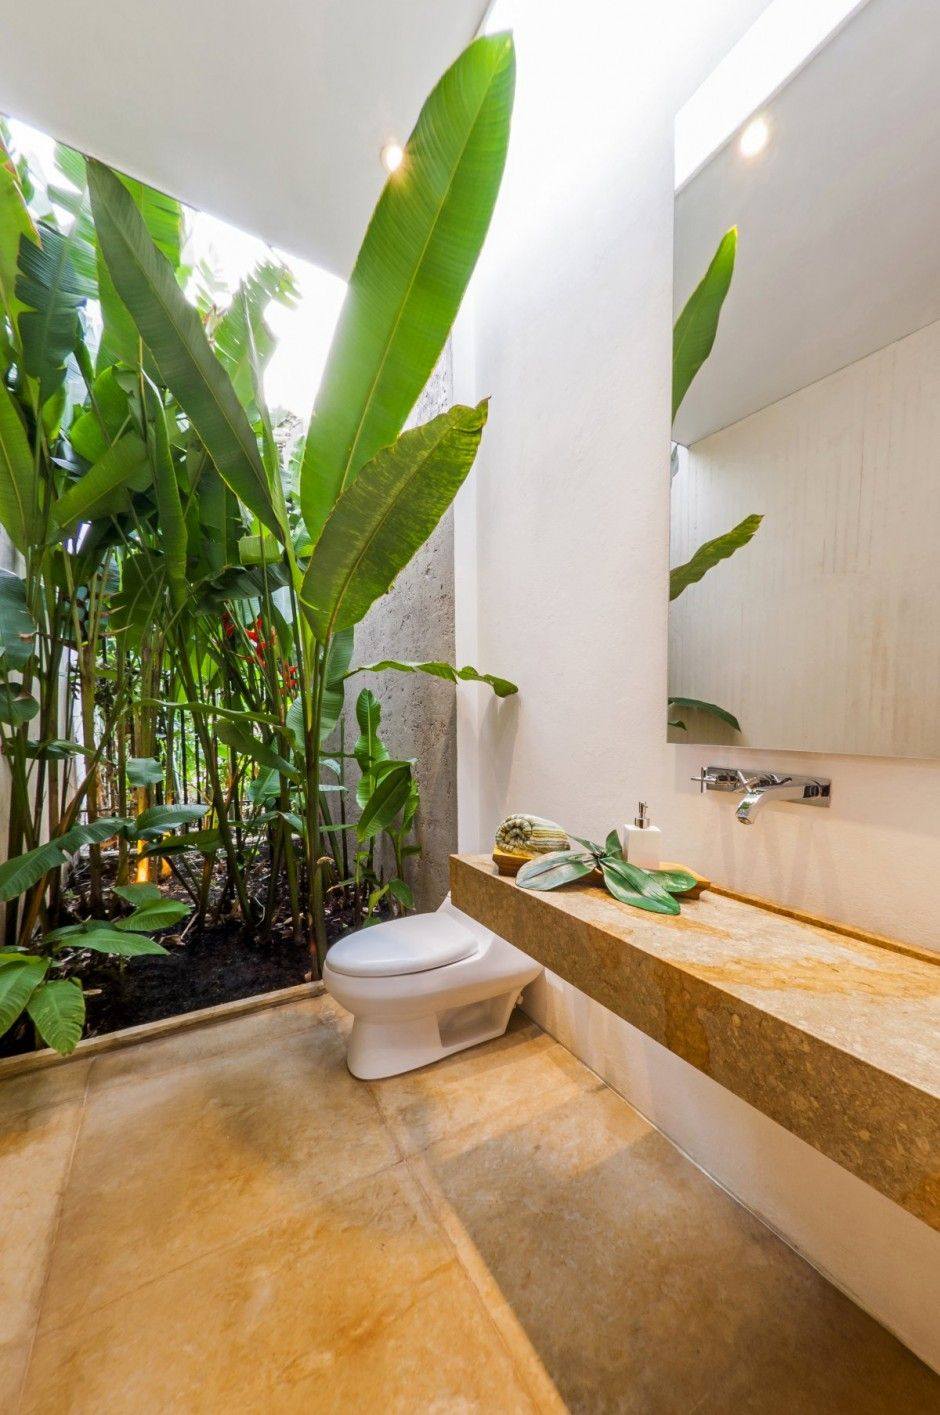 Indoor outdoor bathroom couldnut be this aggressive but itus